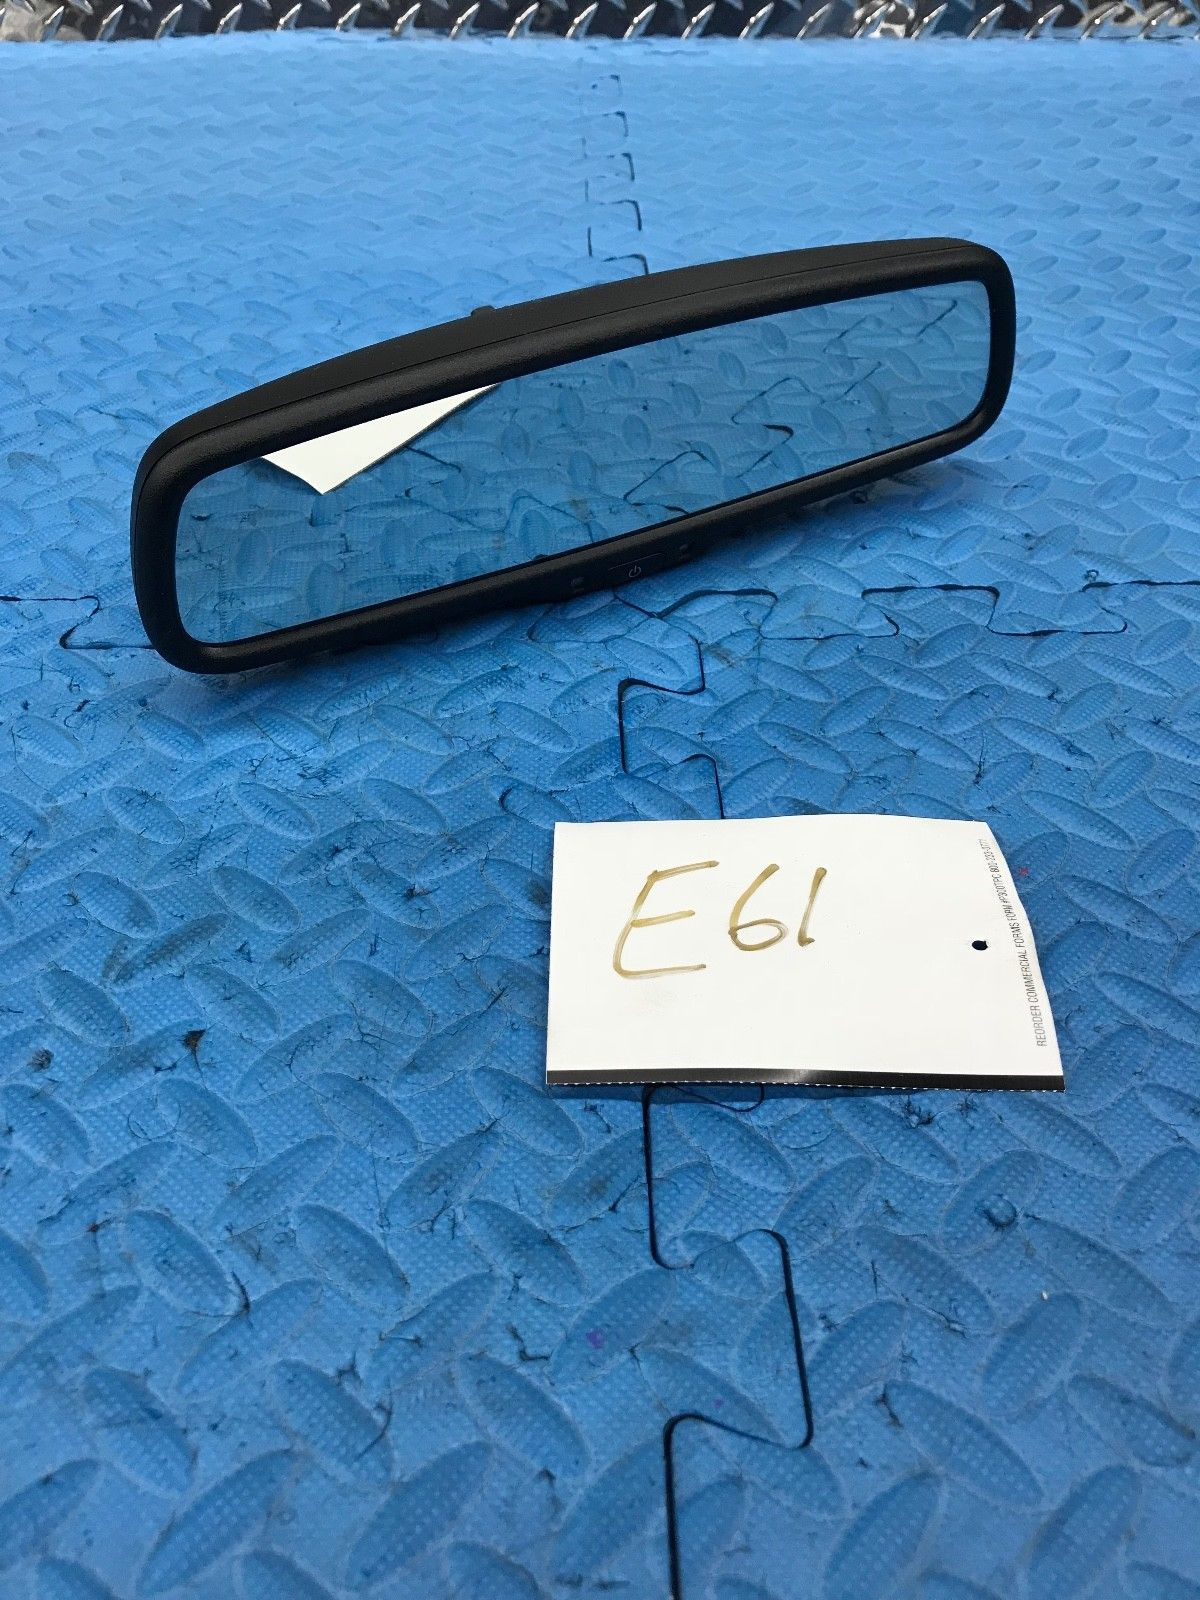 OE Chrysler Mopar Jeep Dodge Part Auto Dim Dimming Rearview Mirror 04805572AD 4805572AD